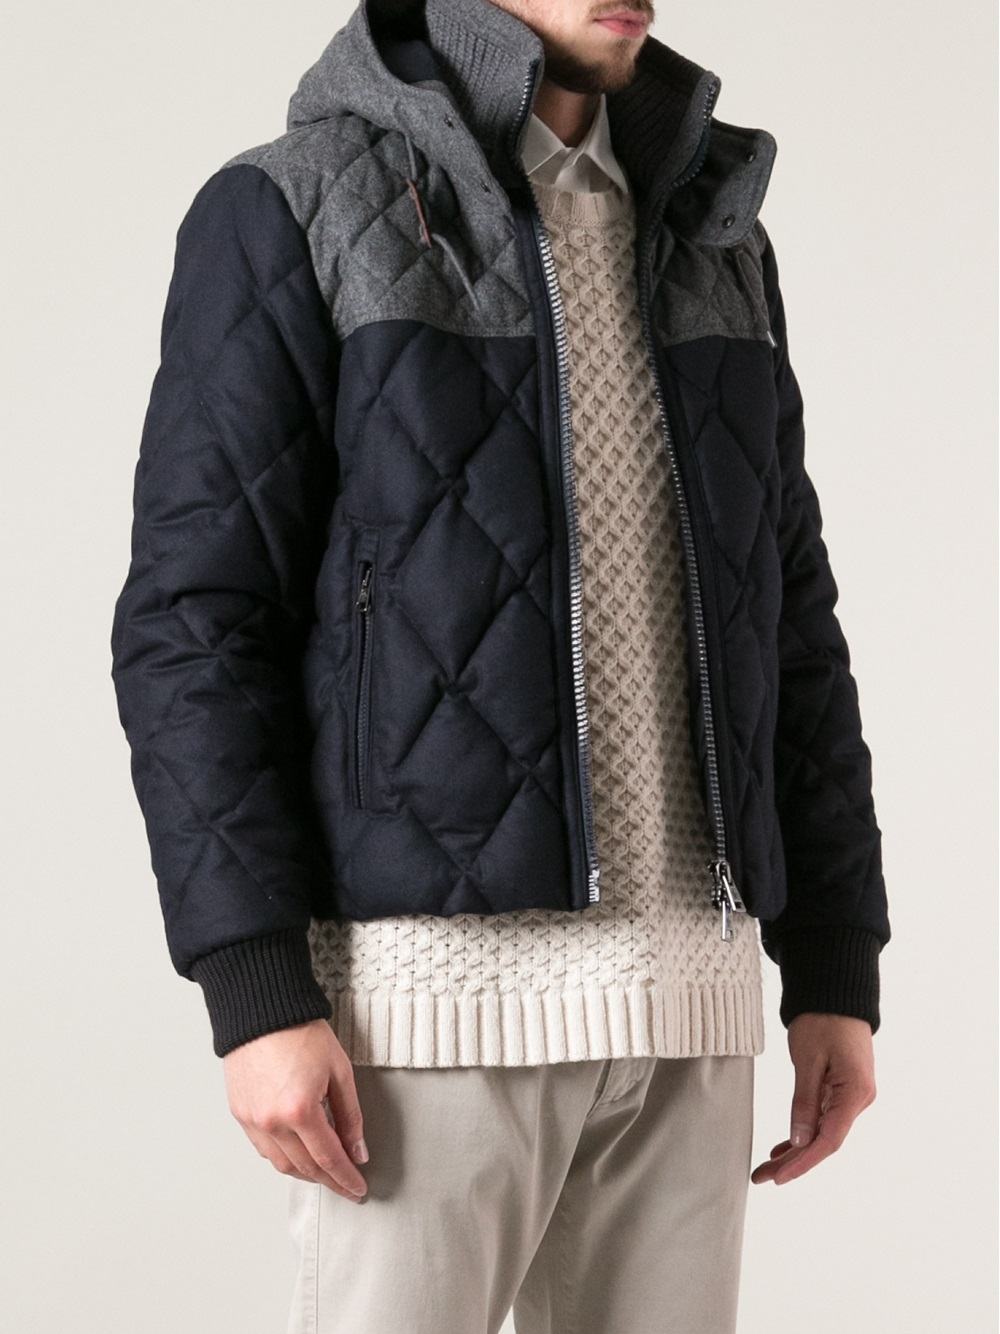 d27f2ee5ac14 Moncler Moncler Diamond Quilted Jacket Size m - Heavy Coats for Sale -  Grailed